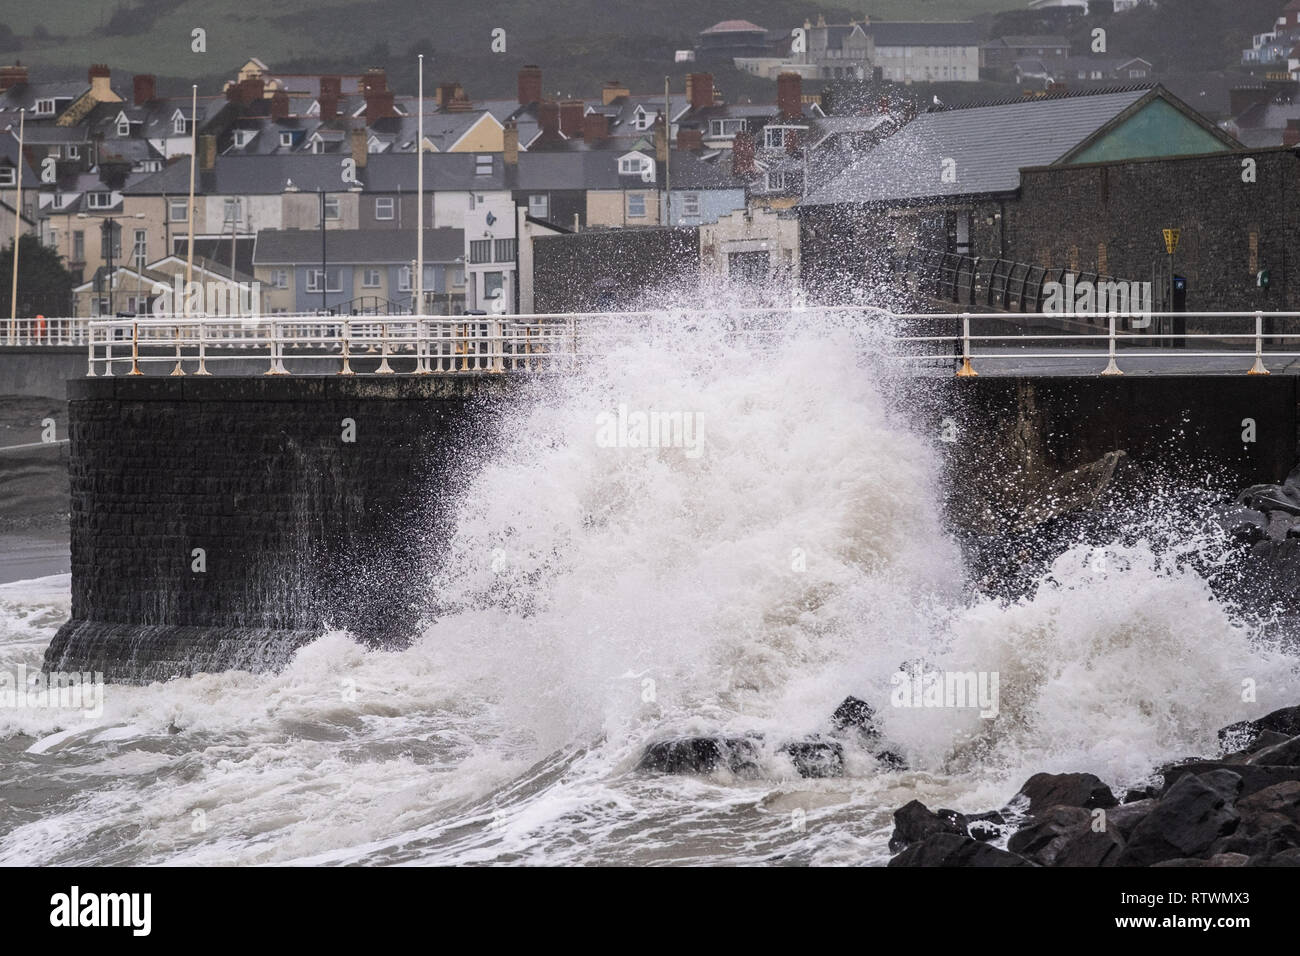 Aberystwyth Wales UK  Sunday 03 March 2019  UK Weather:  The leading edge of Storm Freya, the latest named storm to hit the UK, strikes  Aberystwyth on Sunday morning. The Met Office has issued a yellow warning for much of the western parts of the UK, with gusts of  wind between 60 and 70mph forecast for exposed Irish Sea coasts later in the day and overnight, with the risk of damage to property and injuries to people from flying debris.   Photo credit: Keith Morris / Alamy Live News Stock Photo